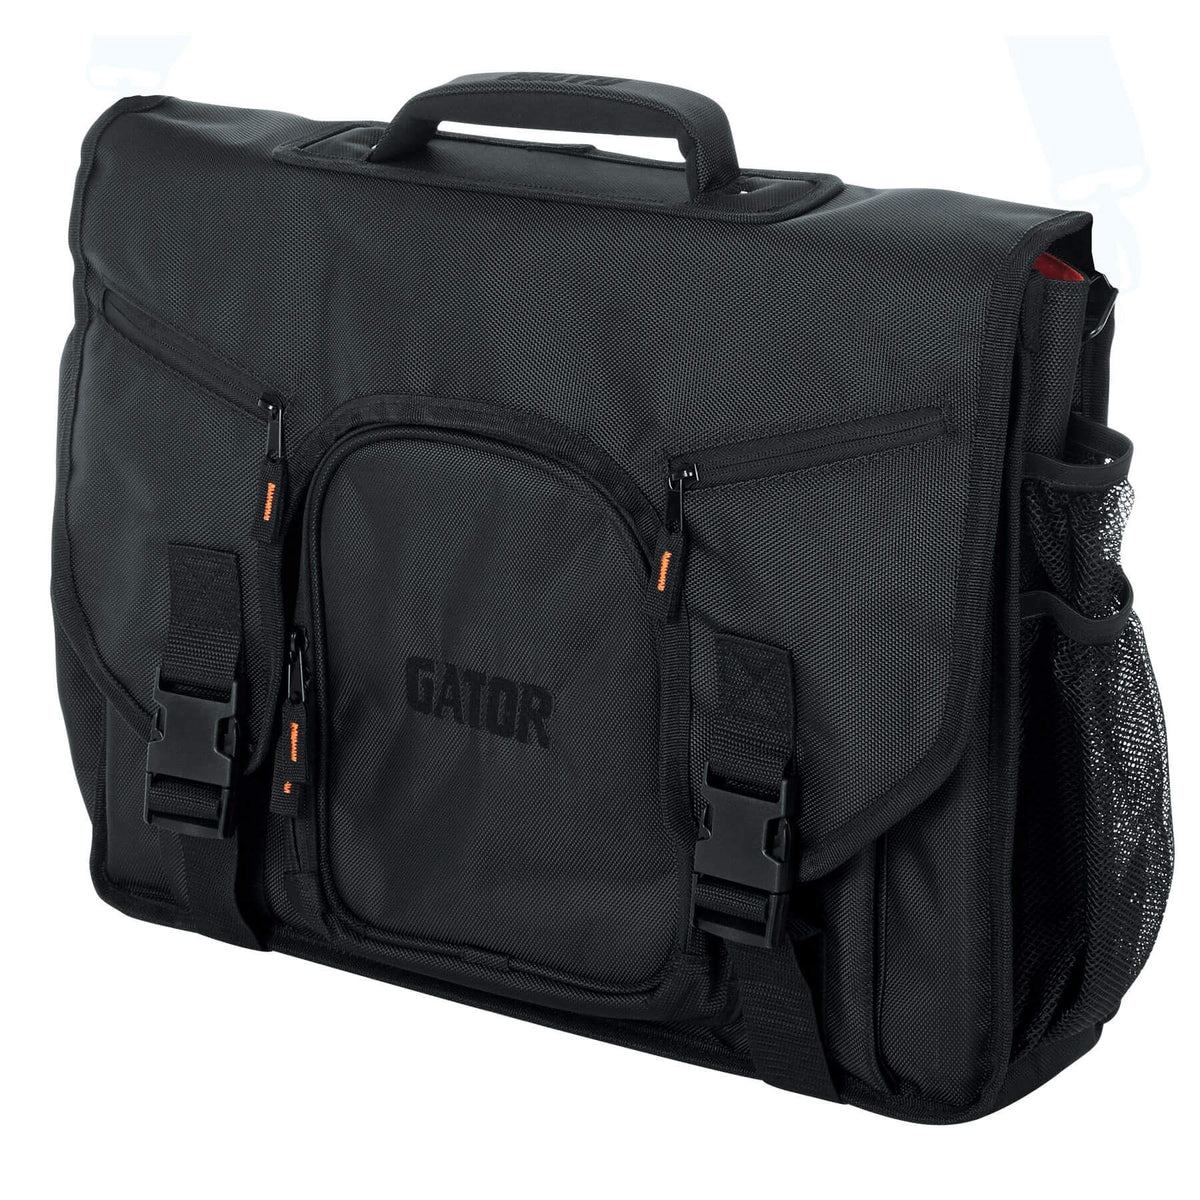 "Gator Cases 19"" Messenger Bag  for Akai APC40, APC40 MKII"